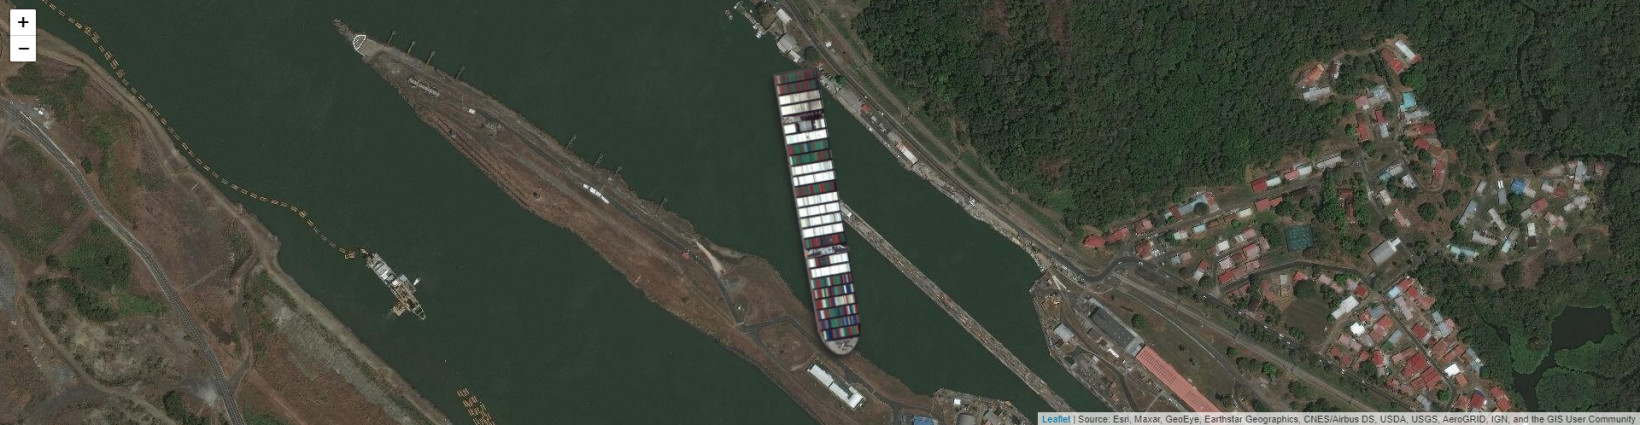 The Ever Given causing a damn kerfuffle on the Panama Canal